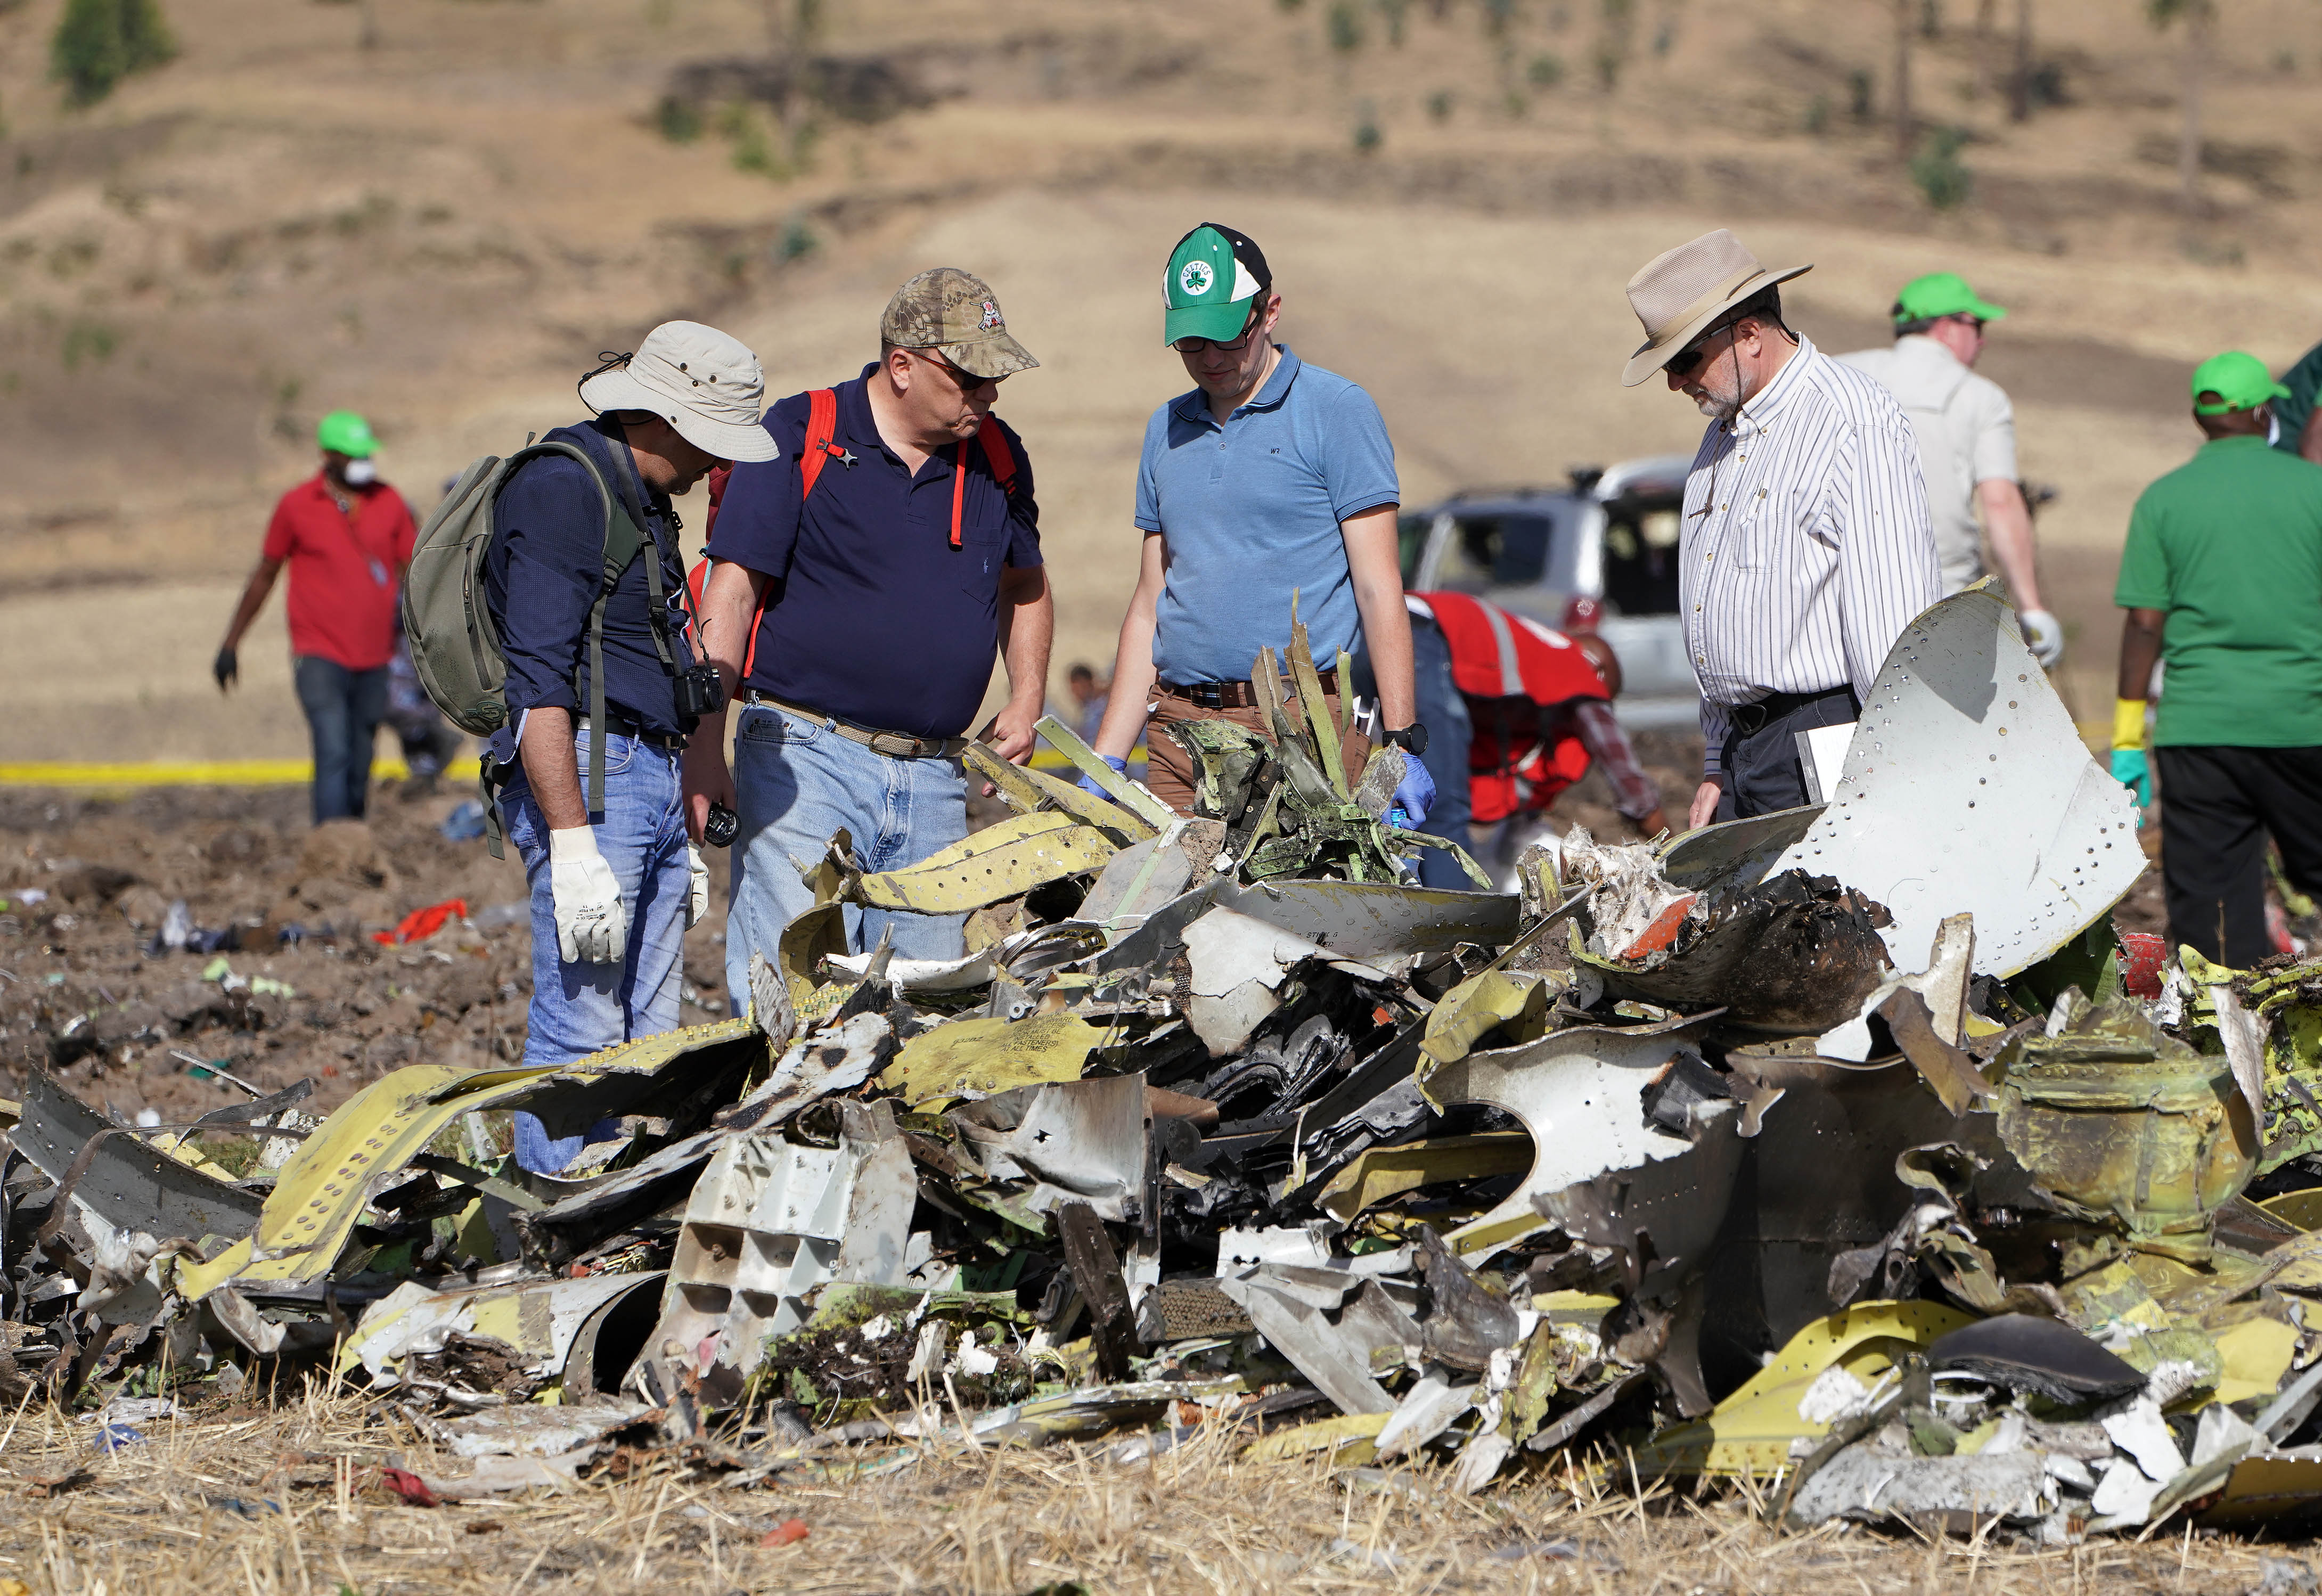 Investigators with the U.S. National Transportation and Safety Board (NTSB) look over debris at the crash site of Ethiopian Airlines Flight ET 302 on March 12, 2019 in Bishoftu, Ethiopia.. All 157 passengers and crew perished after the Ethiopian Airlines Boeing 737 Max 8 Flight came down six minutes after taking off from Bole Airport. (Photo by Jemal Countess/Getty Images)